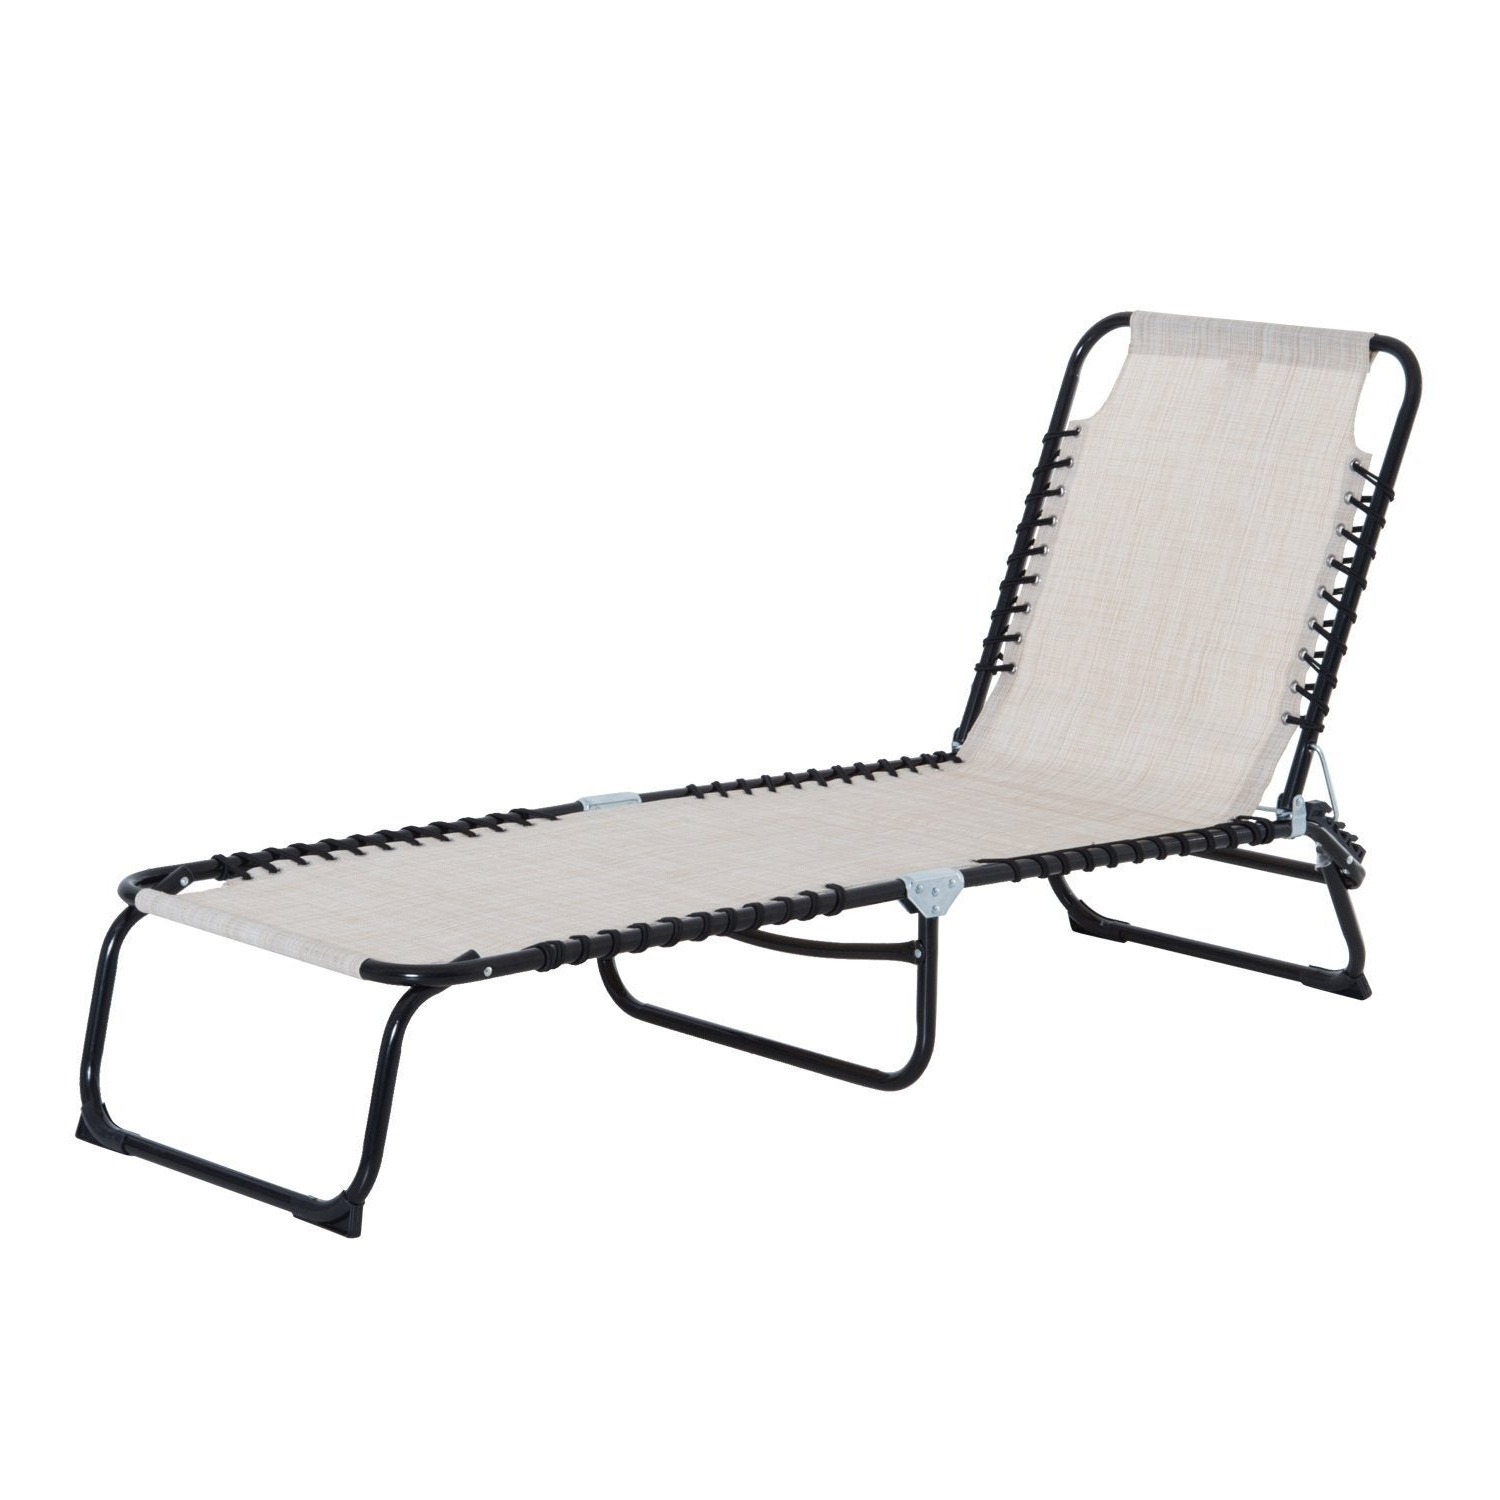 3 Position Portable Reclining Beach Chaise Lounges Regarding Most Current Outsunny 3 Position Portable Reclining Beach Chaise Lounge Folding Chair Outdoor Patio – Cream White (Gallery 1 of 25)